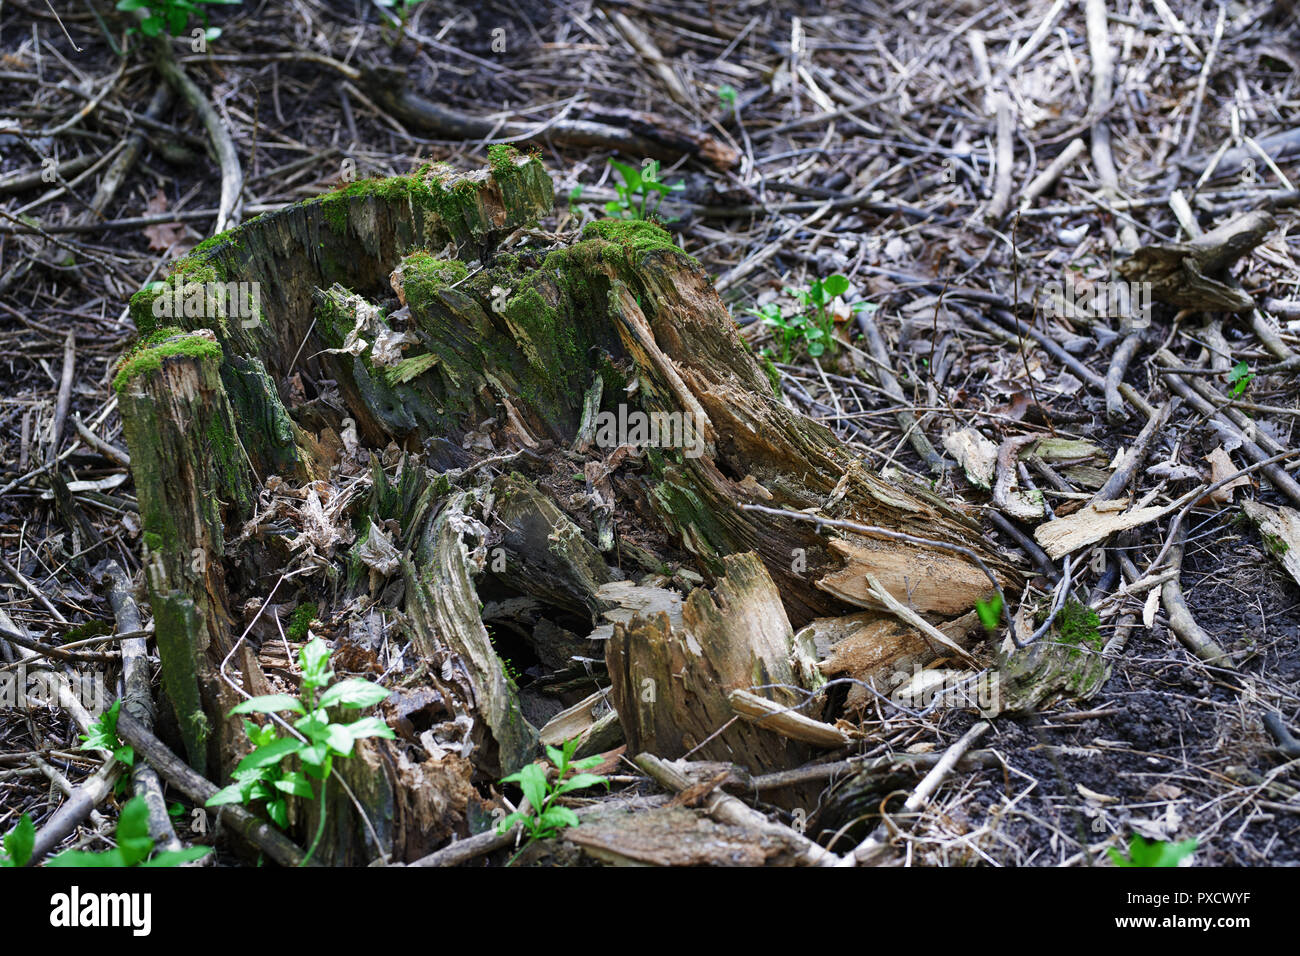 Close-up view on the tree stump with green moss - Stock Image